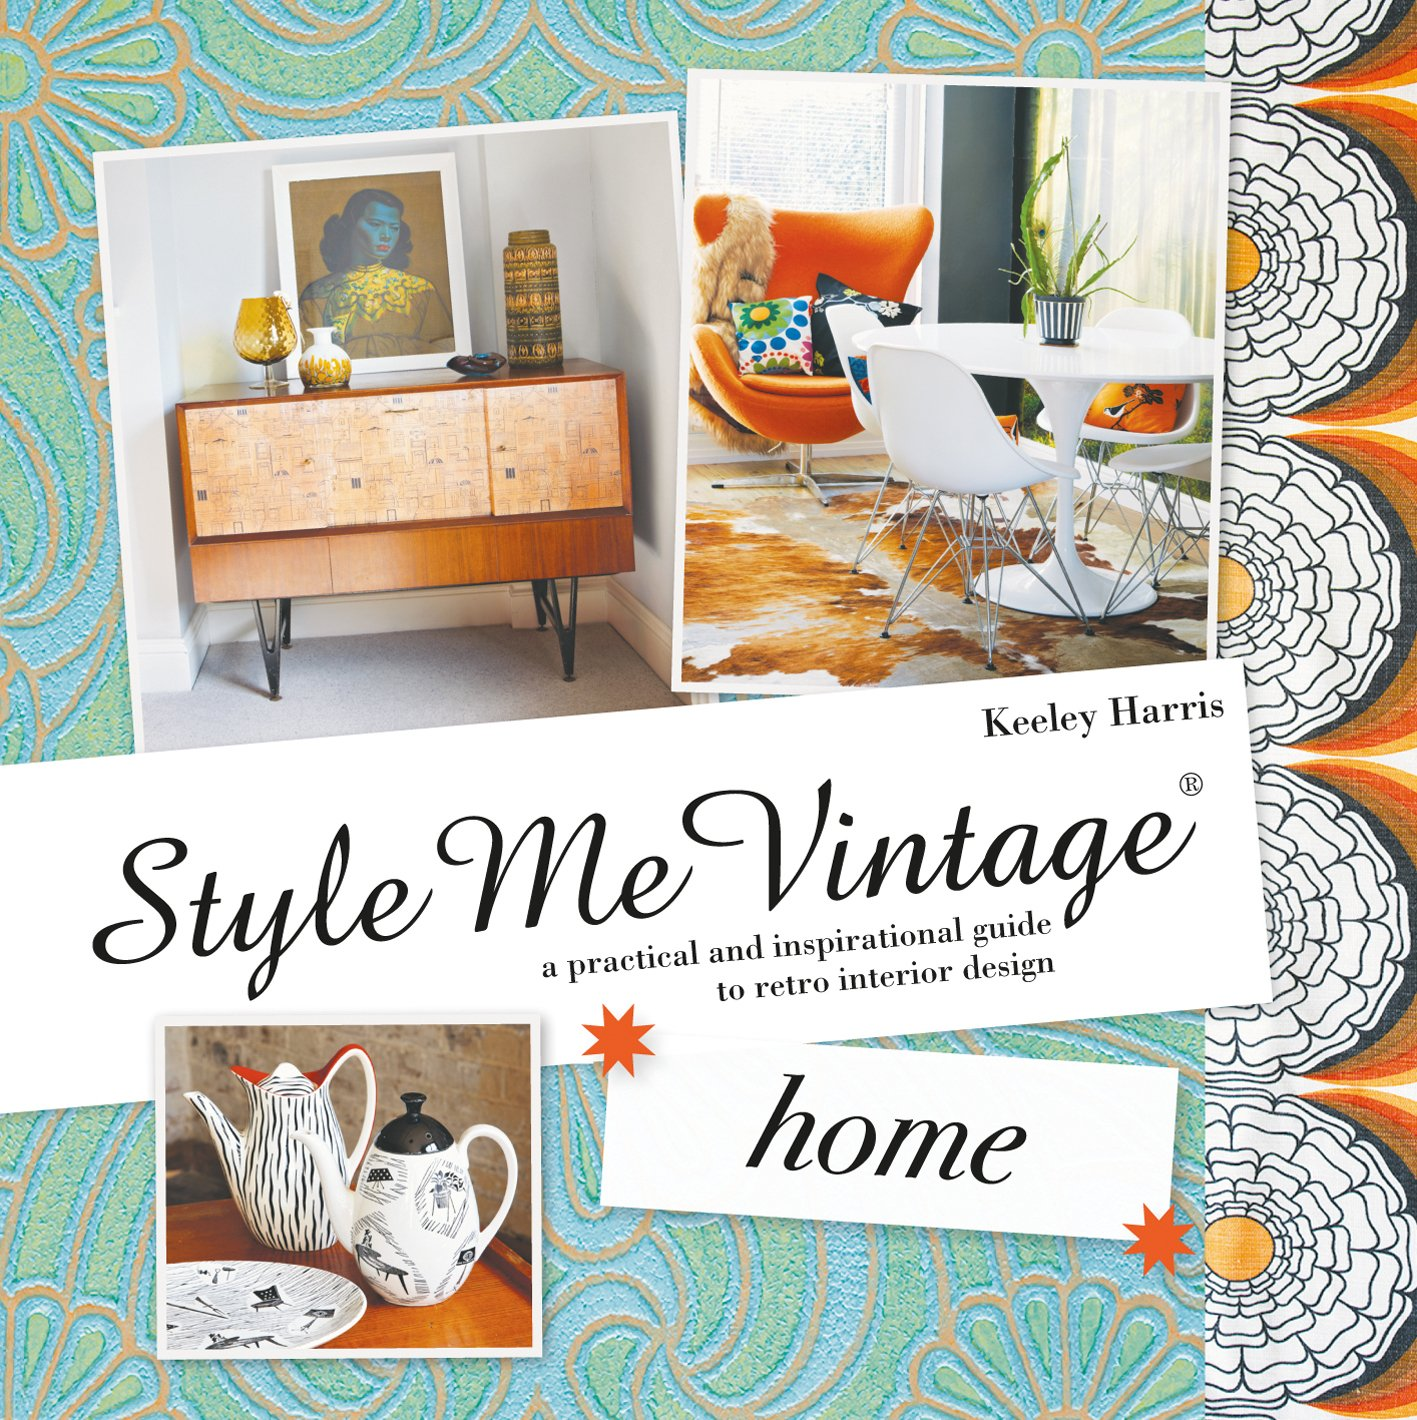 Style Me Vintage Home A Practical And Inspirational Guide To Retro Interior Design Buy Online In Cambodia Missing Category Value Products In Cambodia See Prices Reviews And Free Delivery Over 27 000 Desertcart